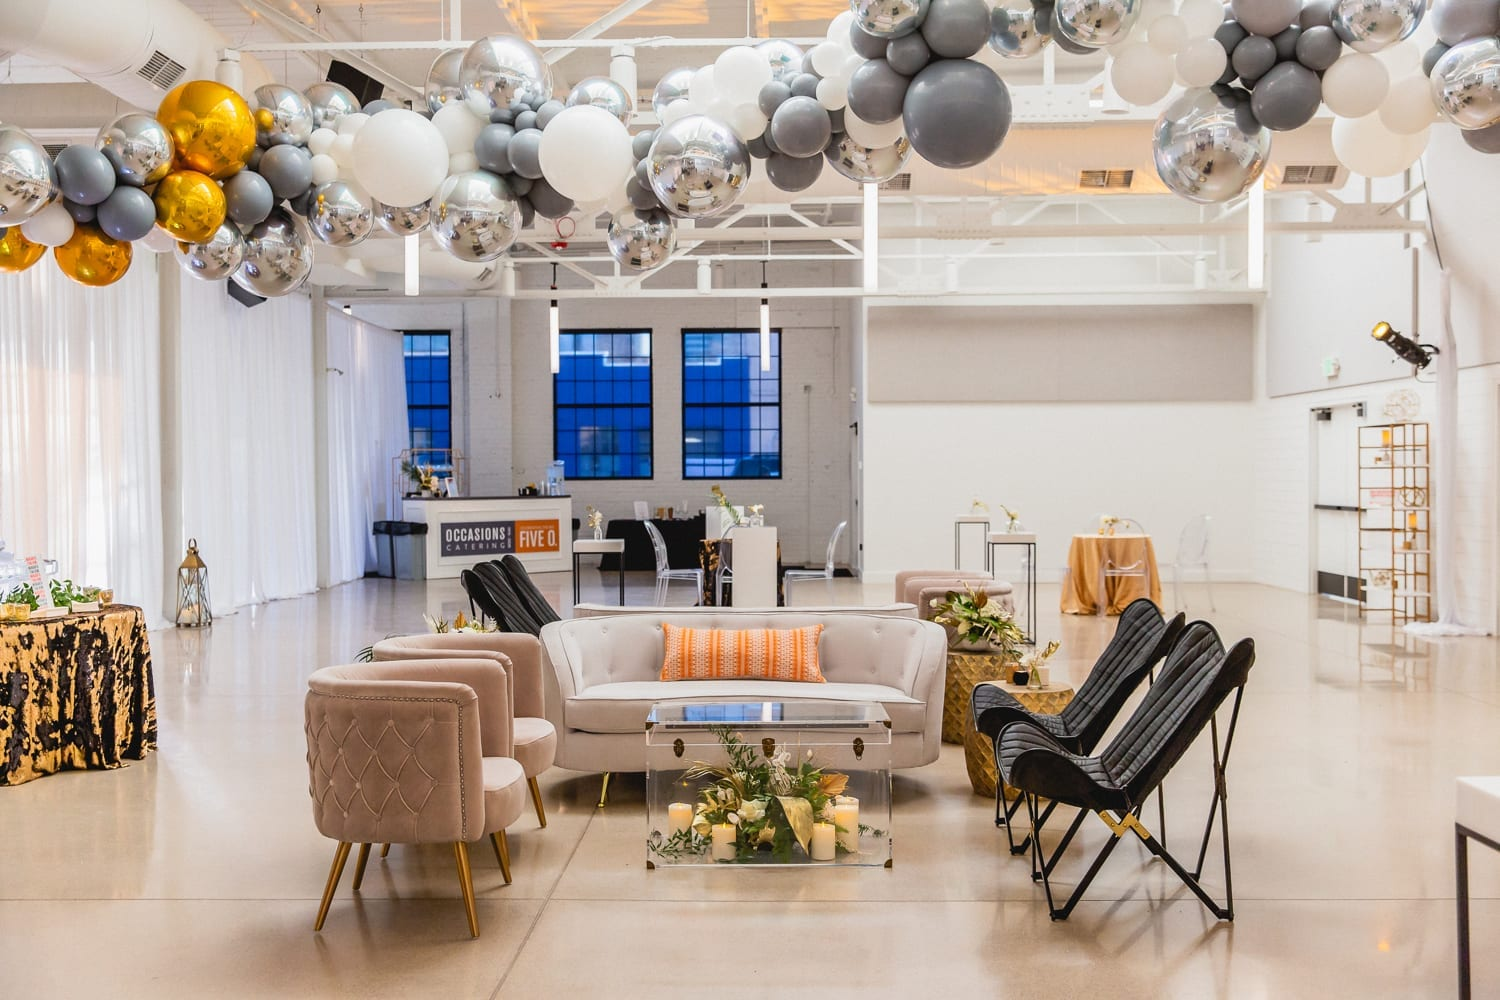 From the Hip Photo | Bear Aesthetic colorado event rental edgy decor design wedding party